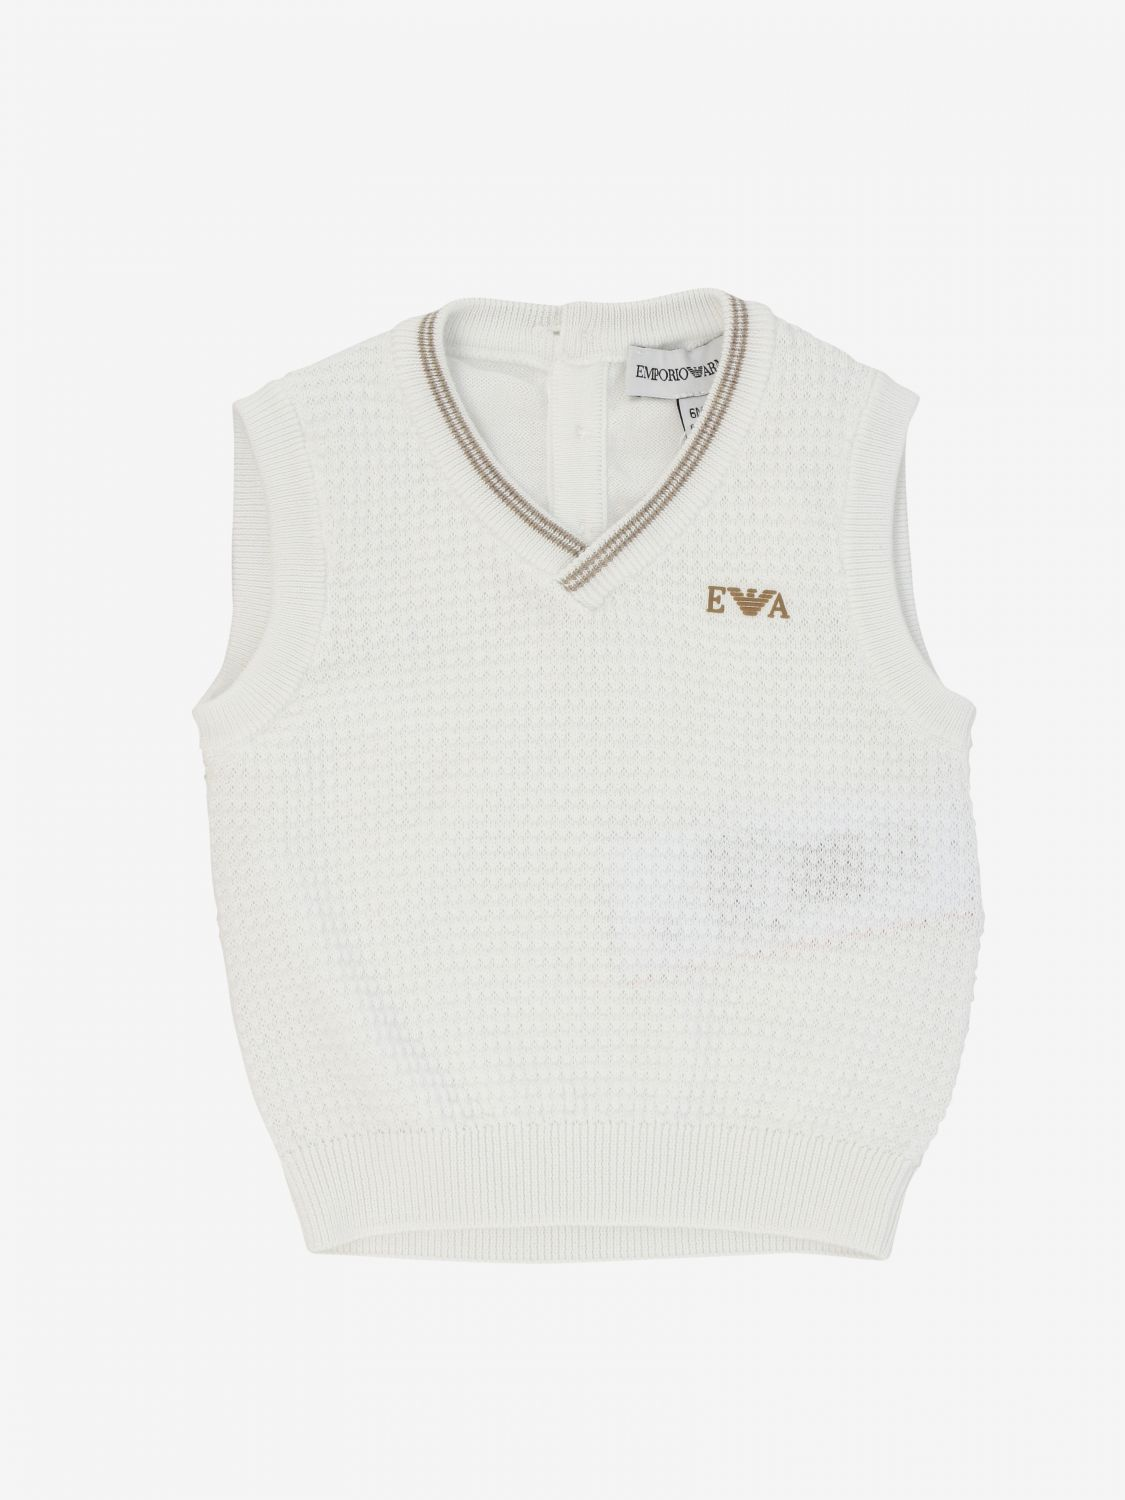 Emporio Armani vest with logo and striped edges white 1